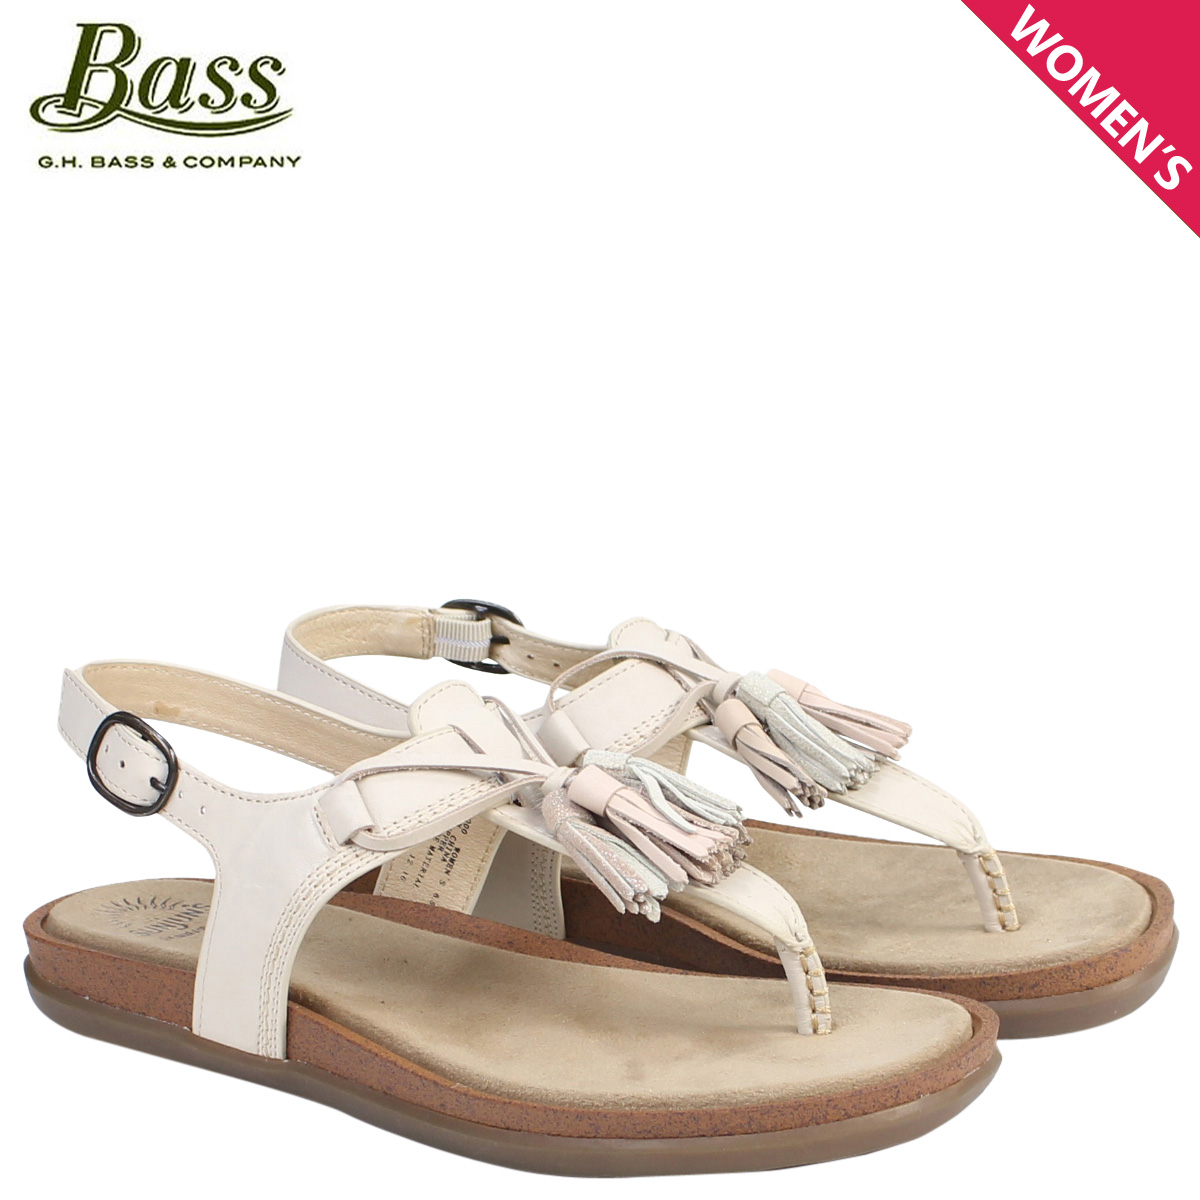 0547449e419 Whats up Sports  G.H. BASS sandals lady s G H bus tong T-strap SADIE  T-STRAP SUNJUNS 71-23